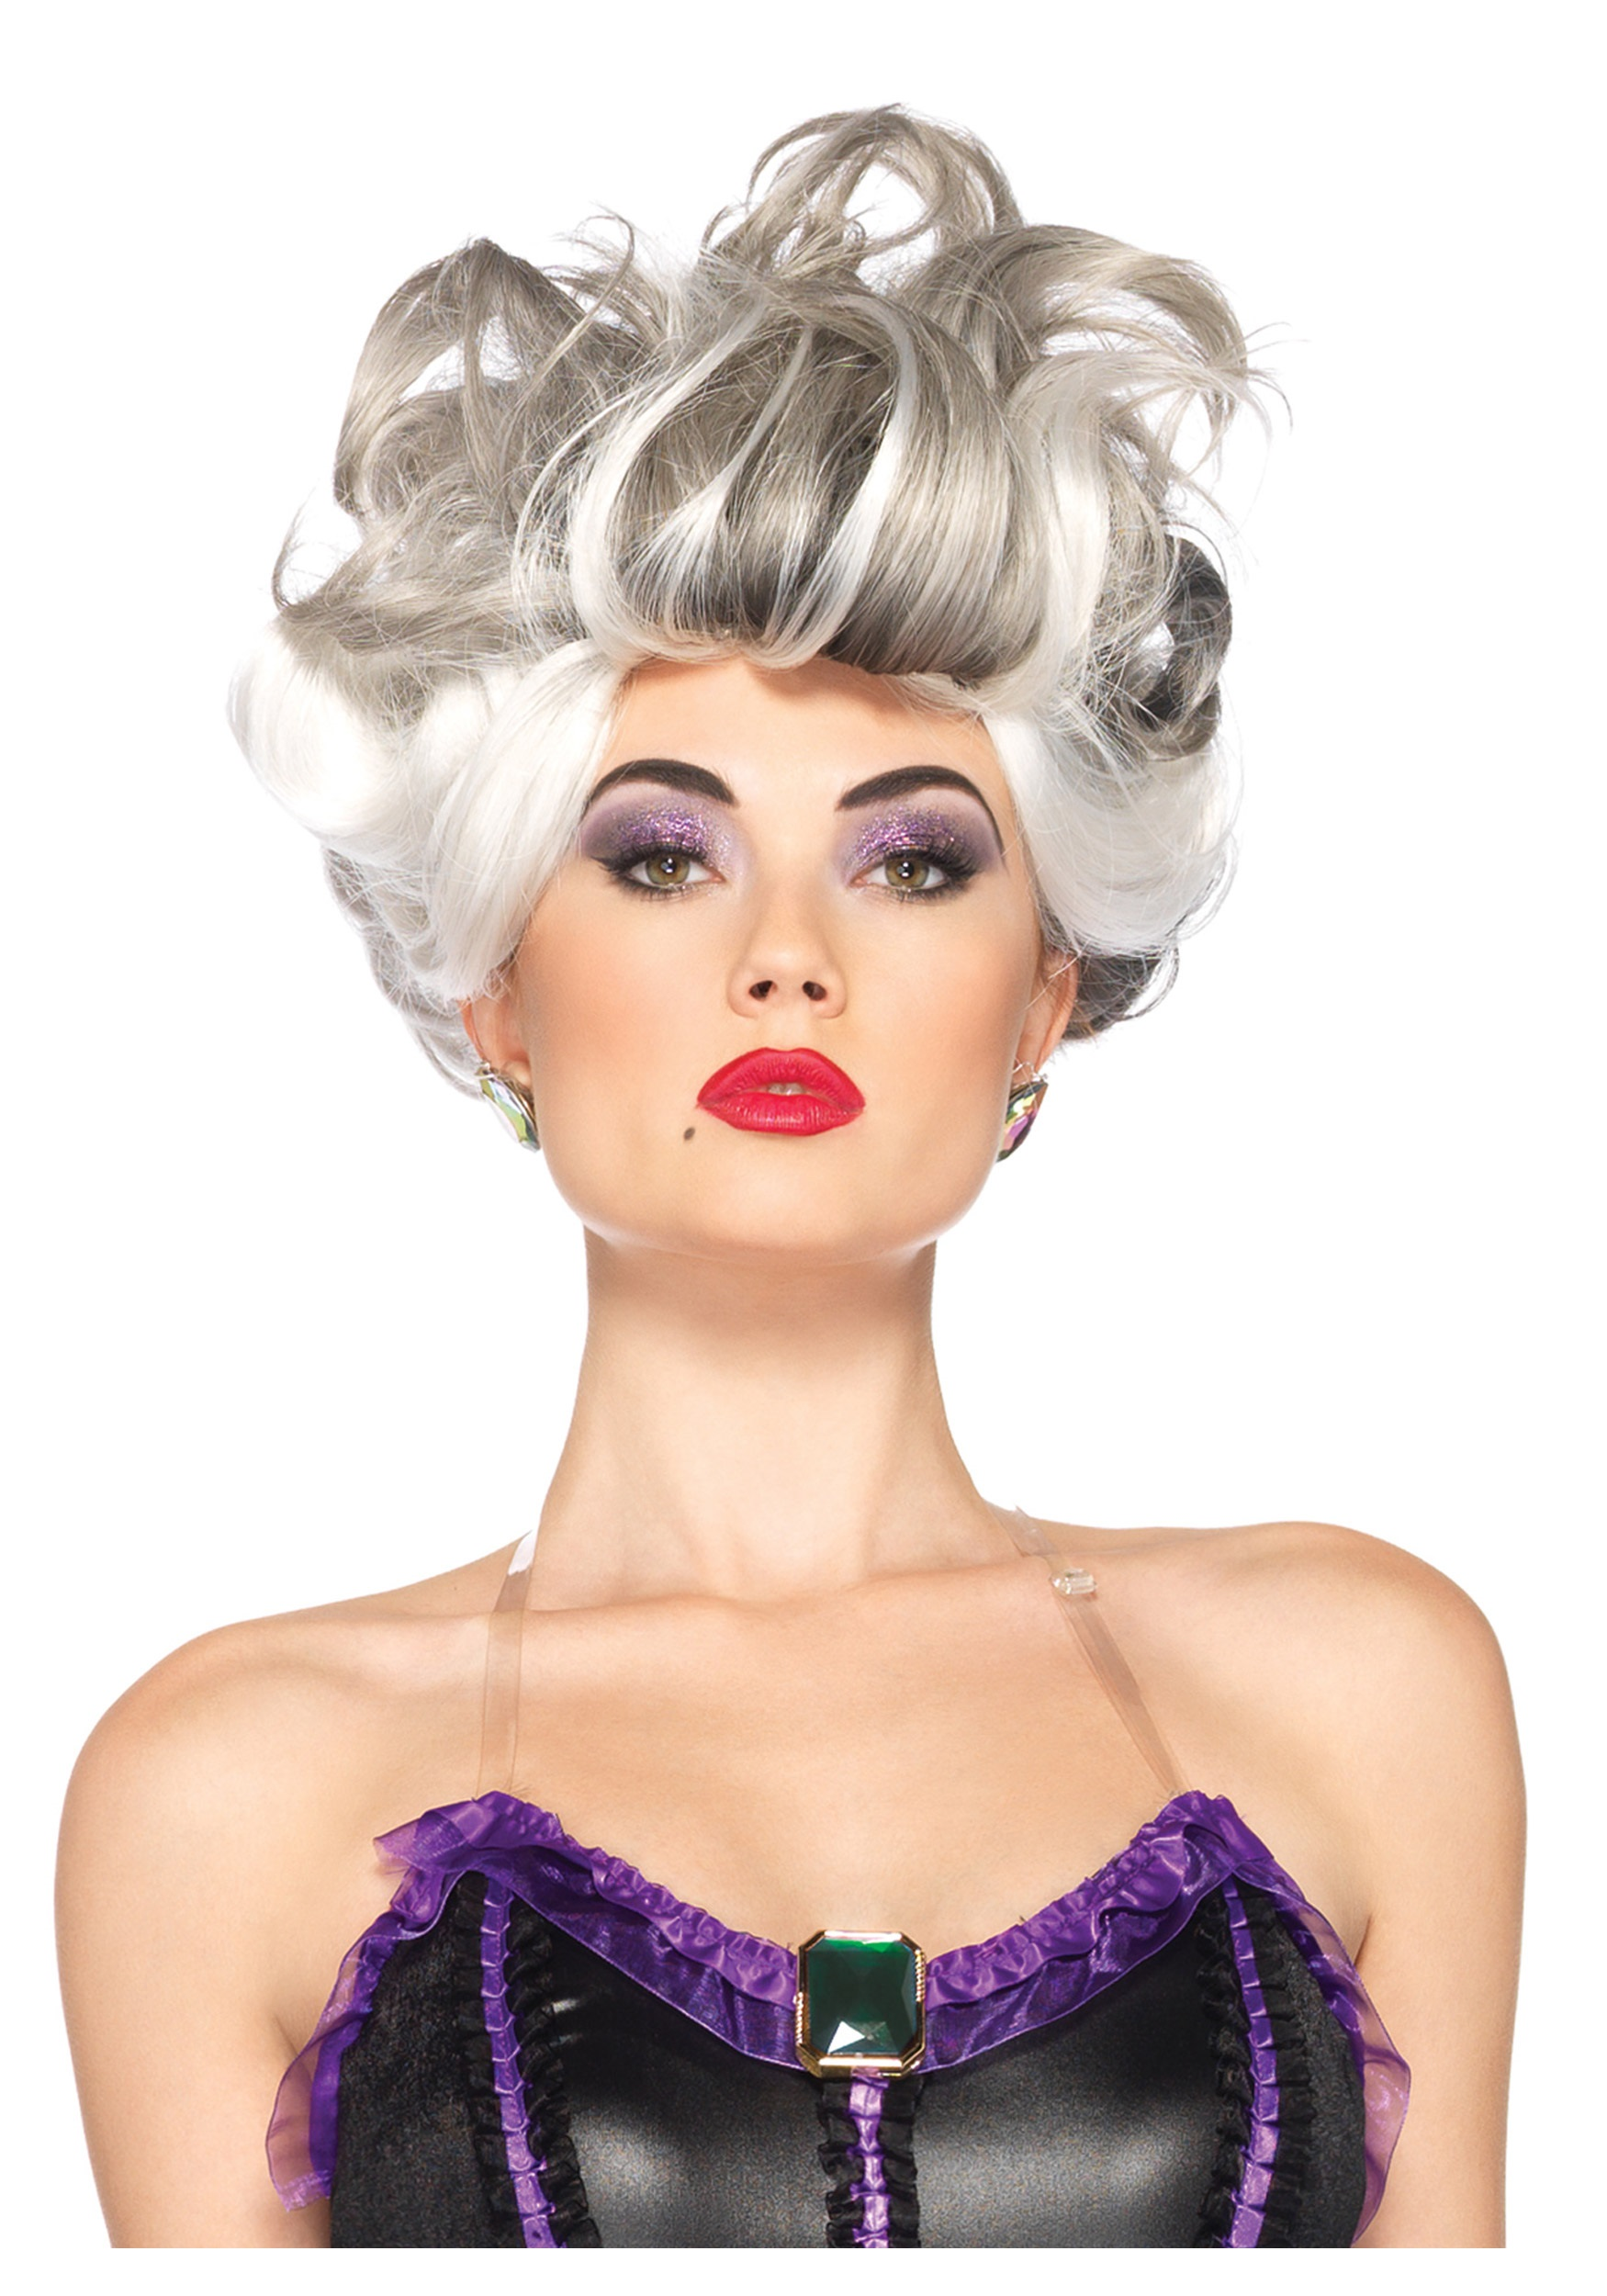 Ursula The Sea Witch Wig - Hair Wig Long